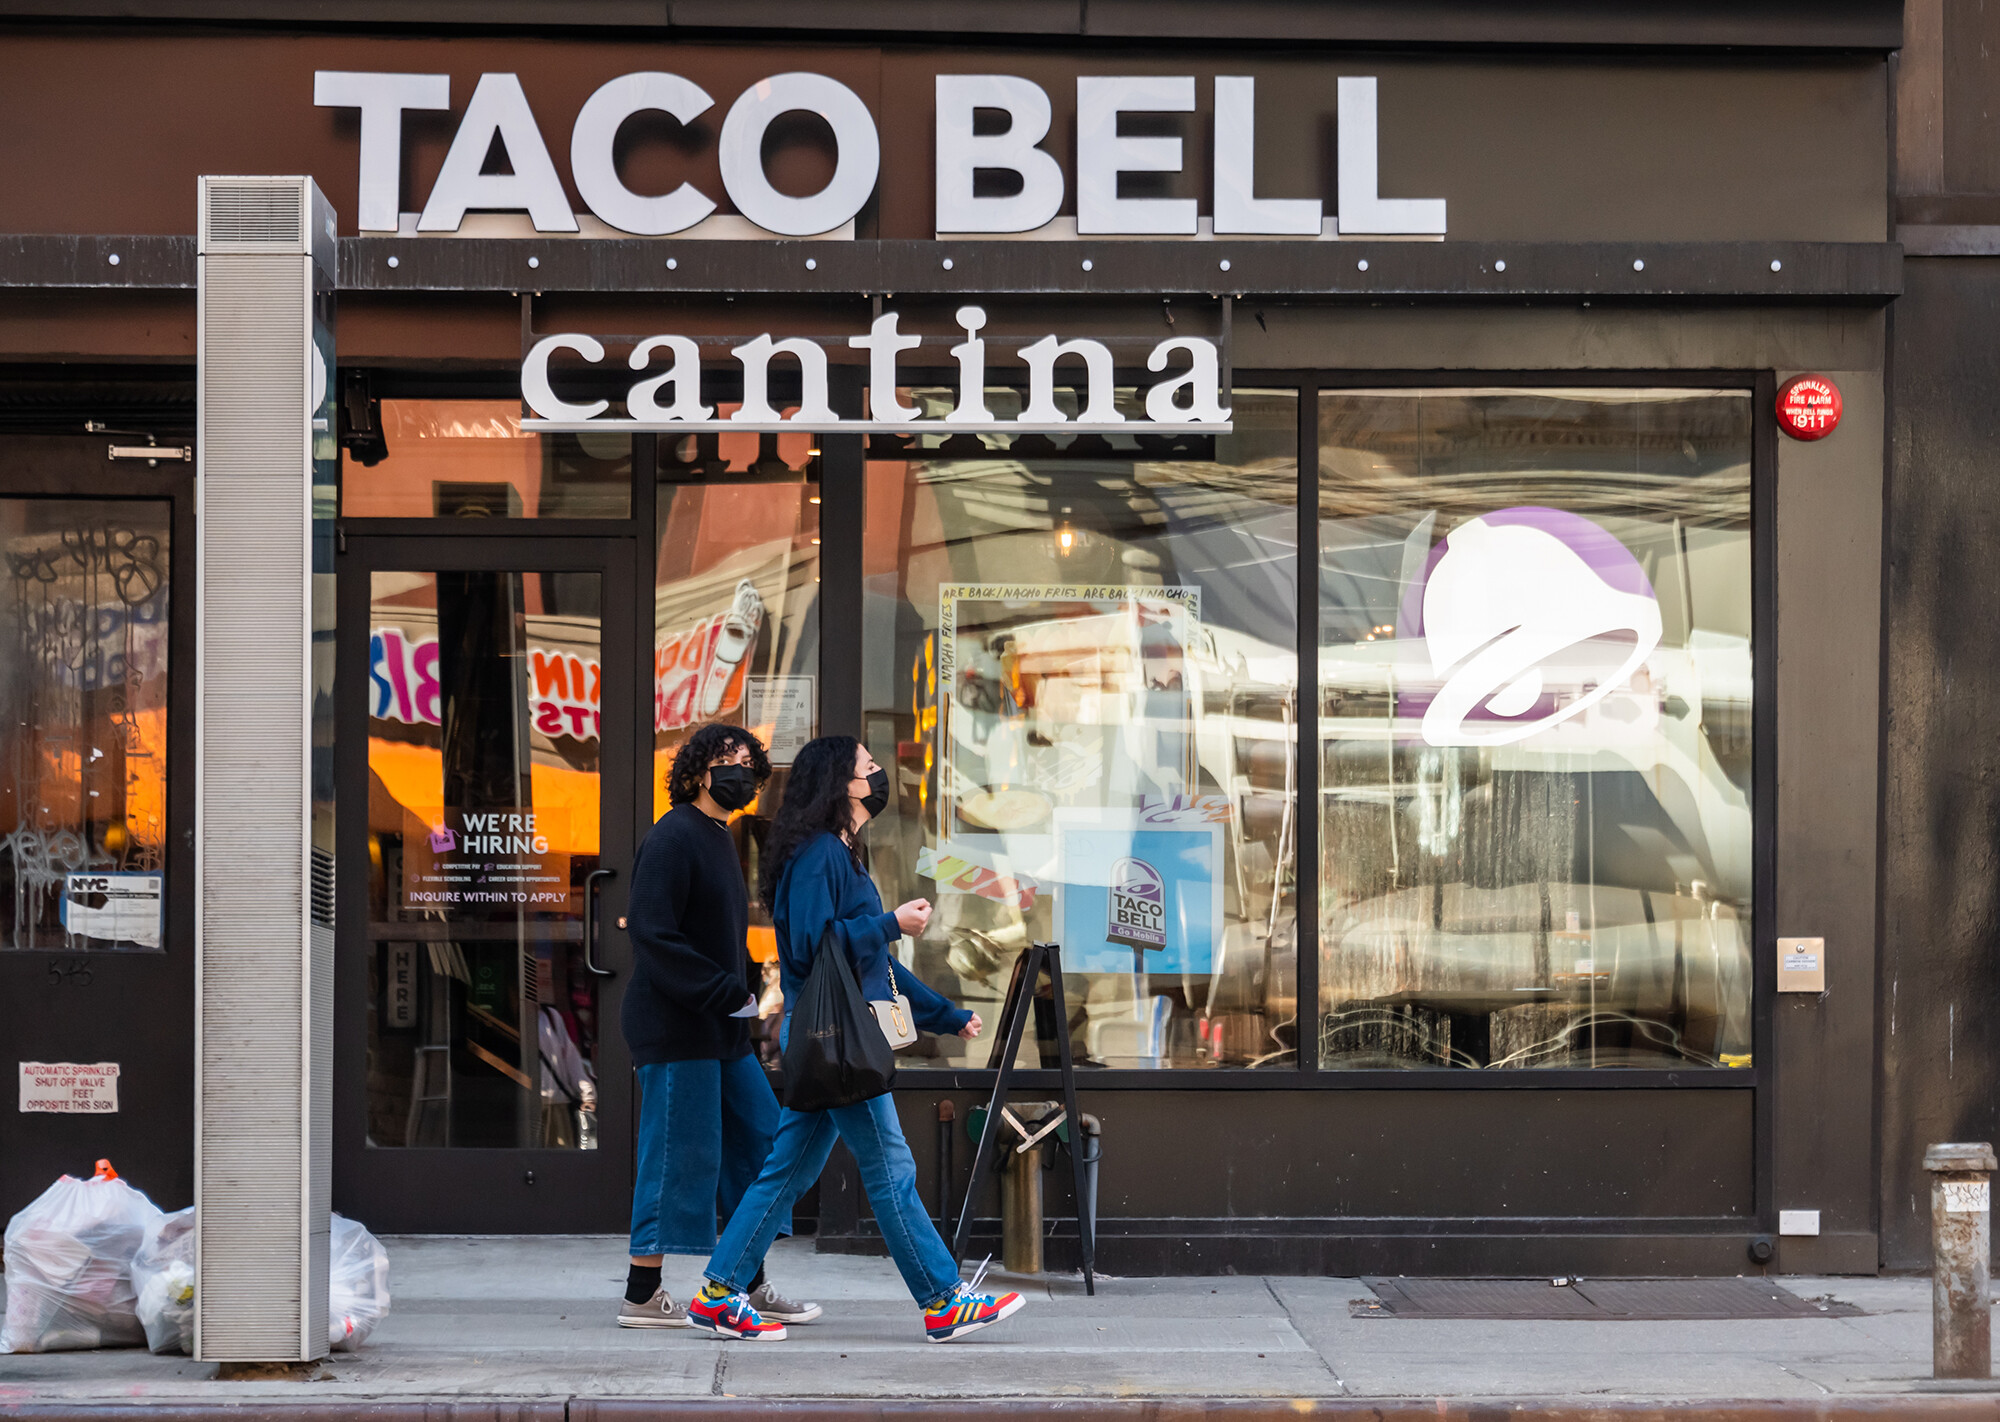 <i>Noam Galai/Getty Images</i><br/>Two people wearing masks walk by a Taco Bell Cantina on March 21 in New York City. The chain apologized on its website July 20